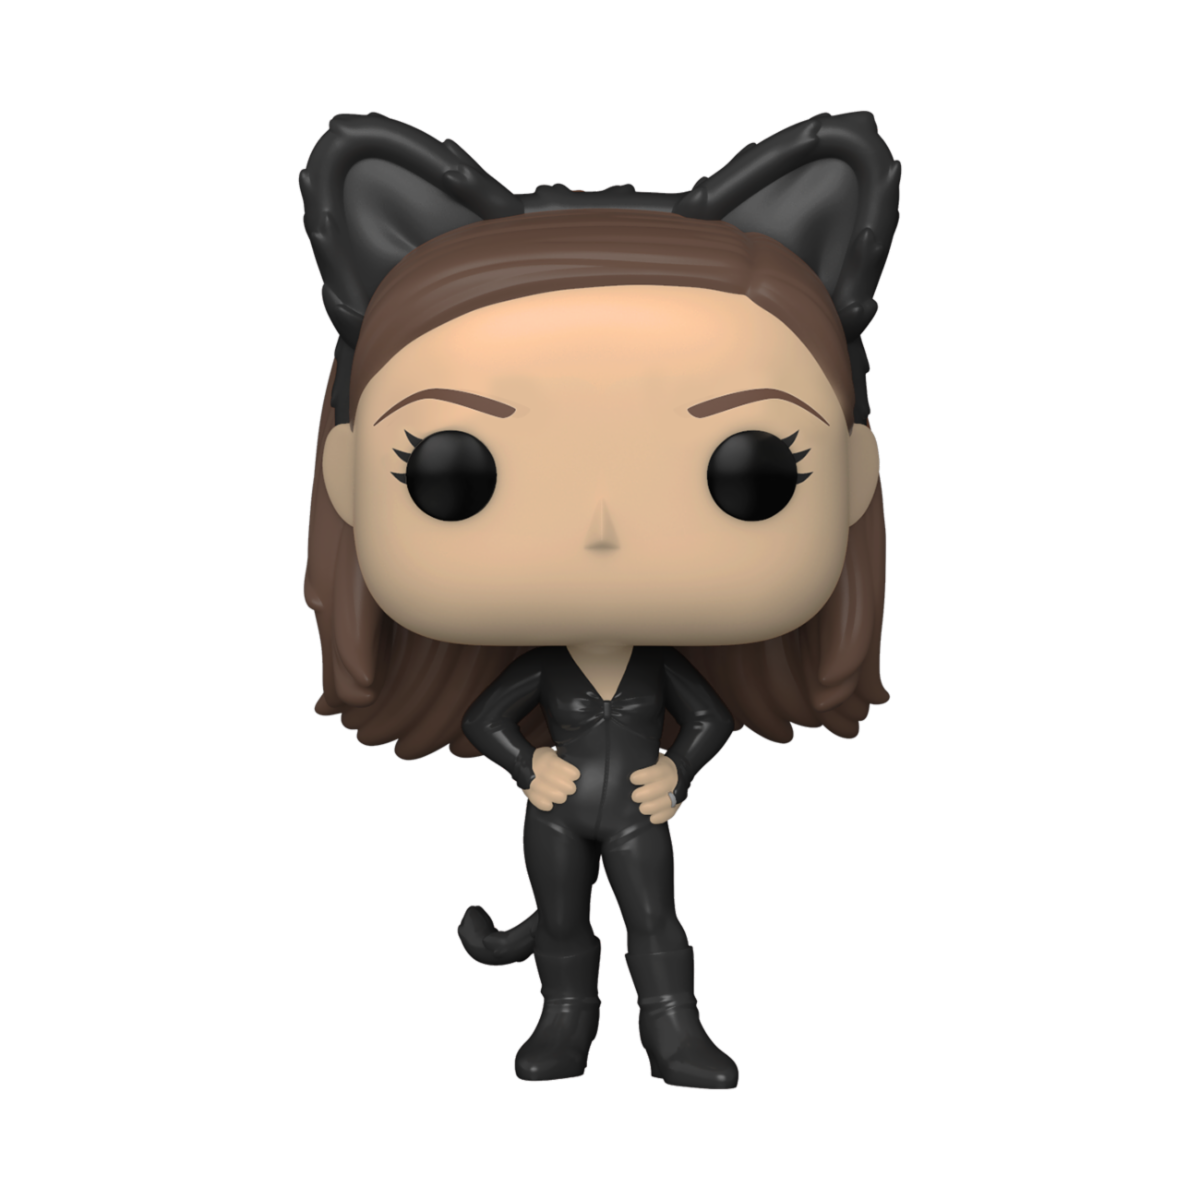 FIGURA POP TV: FRIENDS - MONICA AS CATWOMAN